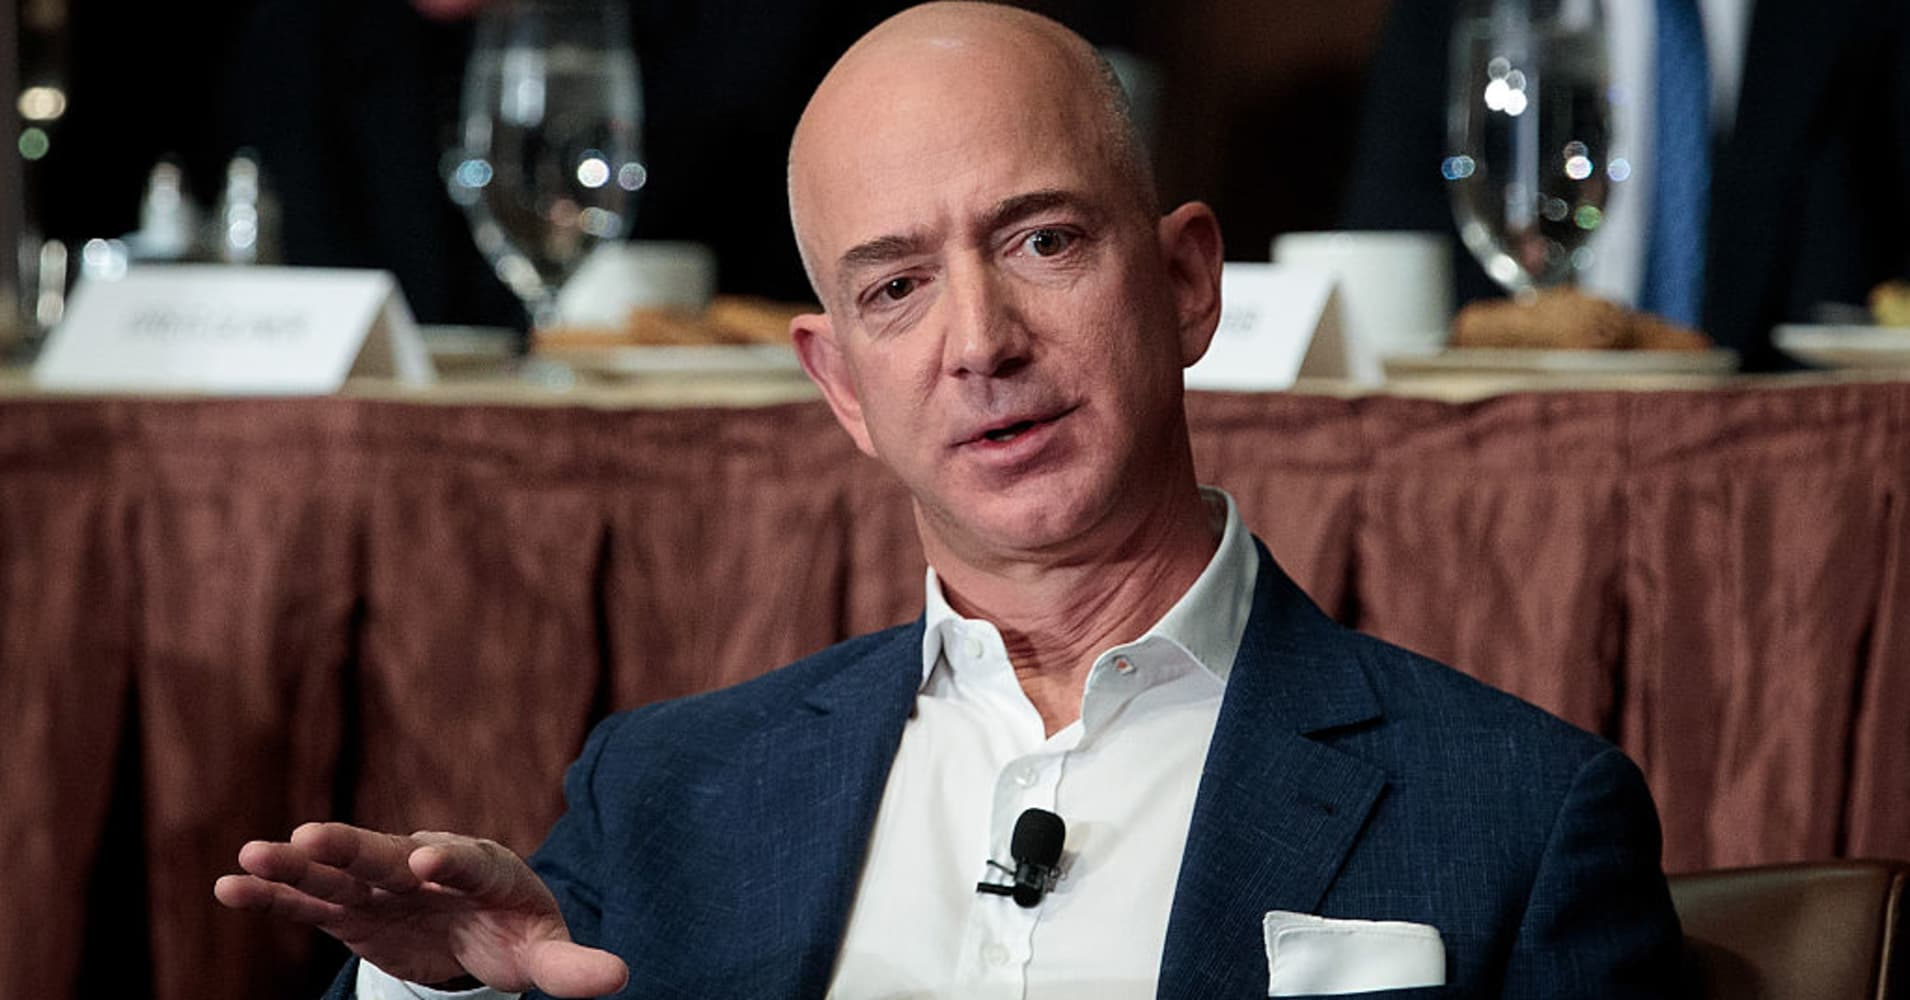 Jeff Bezos is Asking the Public for Ideas on Philanthropic Giving